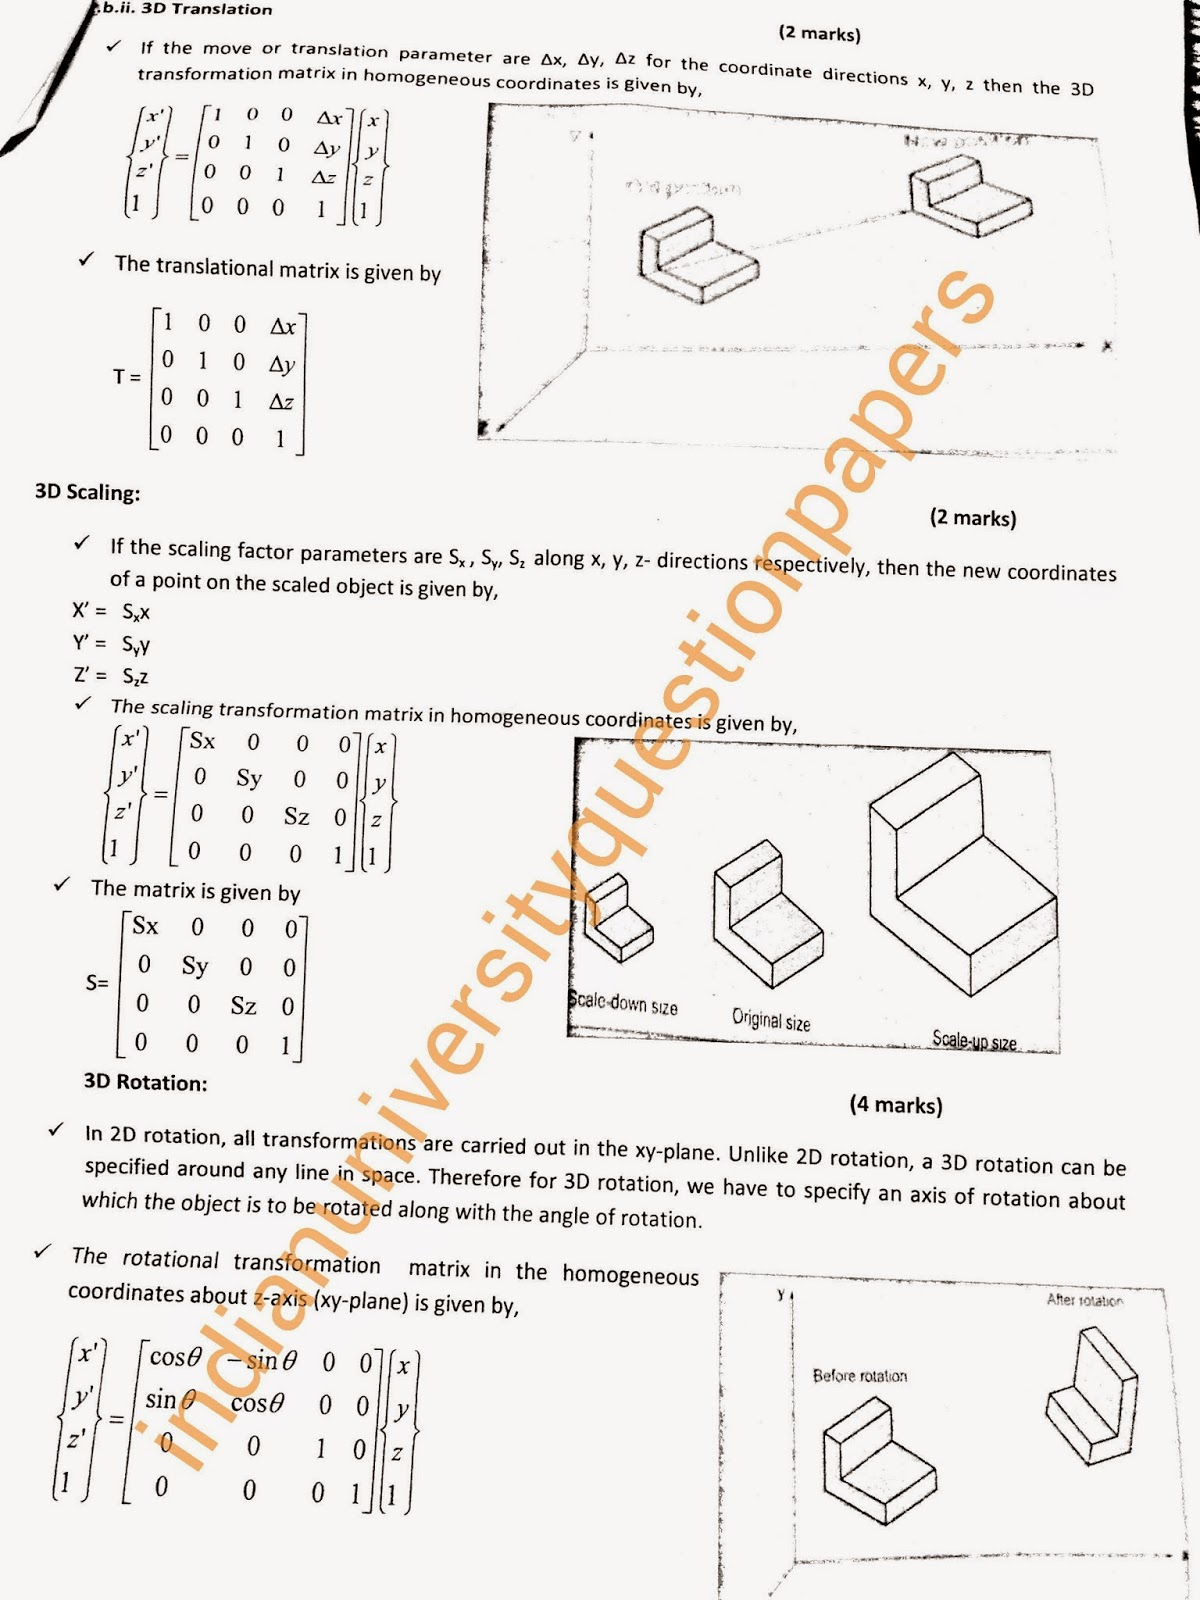 computers in manufacturing essay Computer integrated manufacturing and robotics essay 10 introduction computer integrated manufacturing (cim) is a phrase used to describe the complete automation of a manufacturing plant, with all processes functioning under computer control and digital information tying them together.